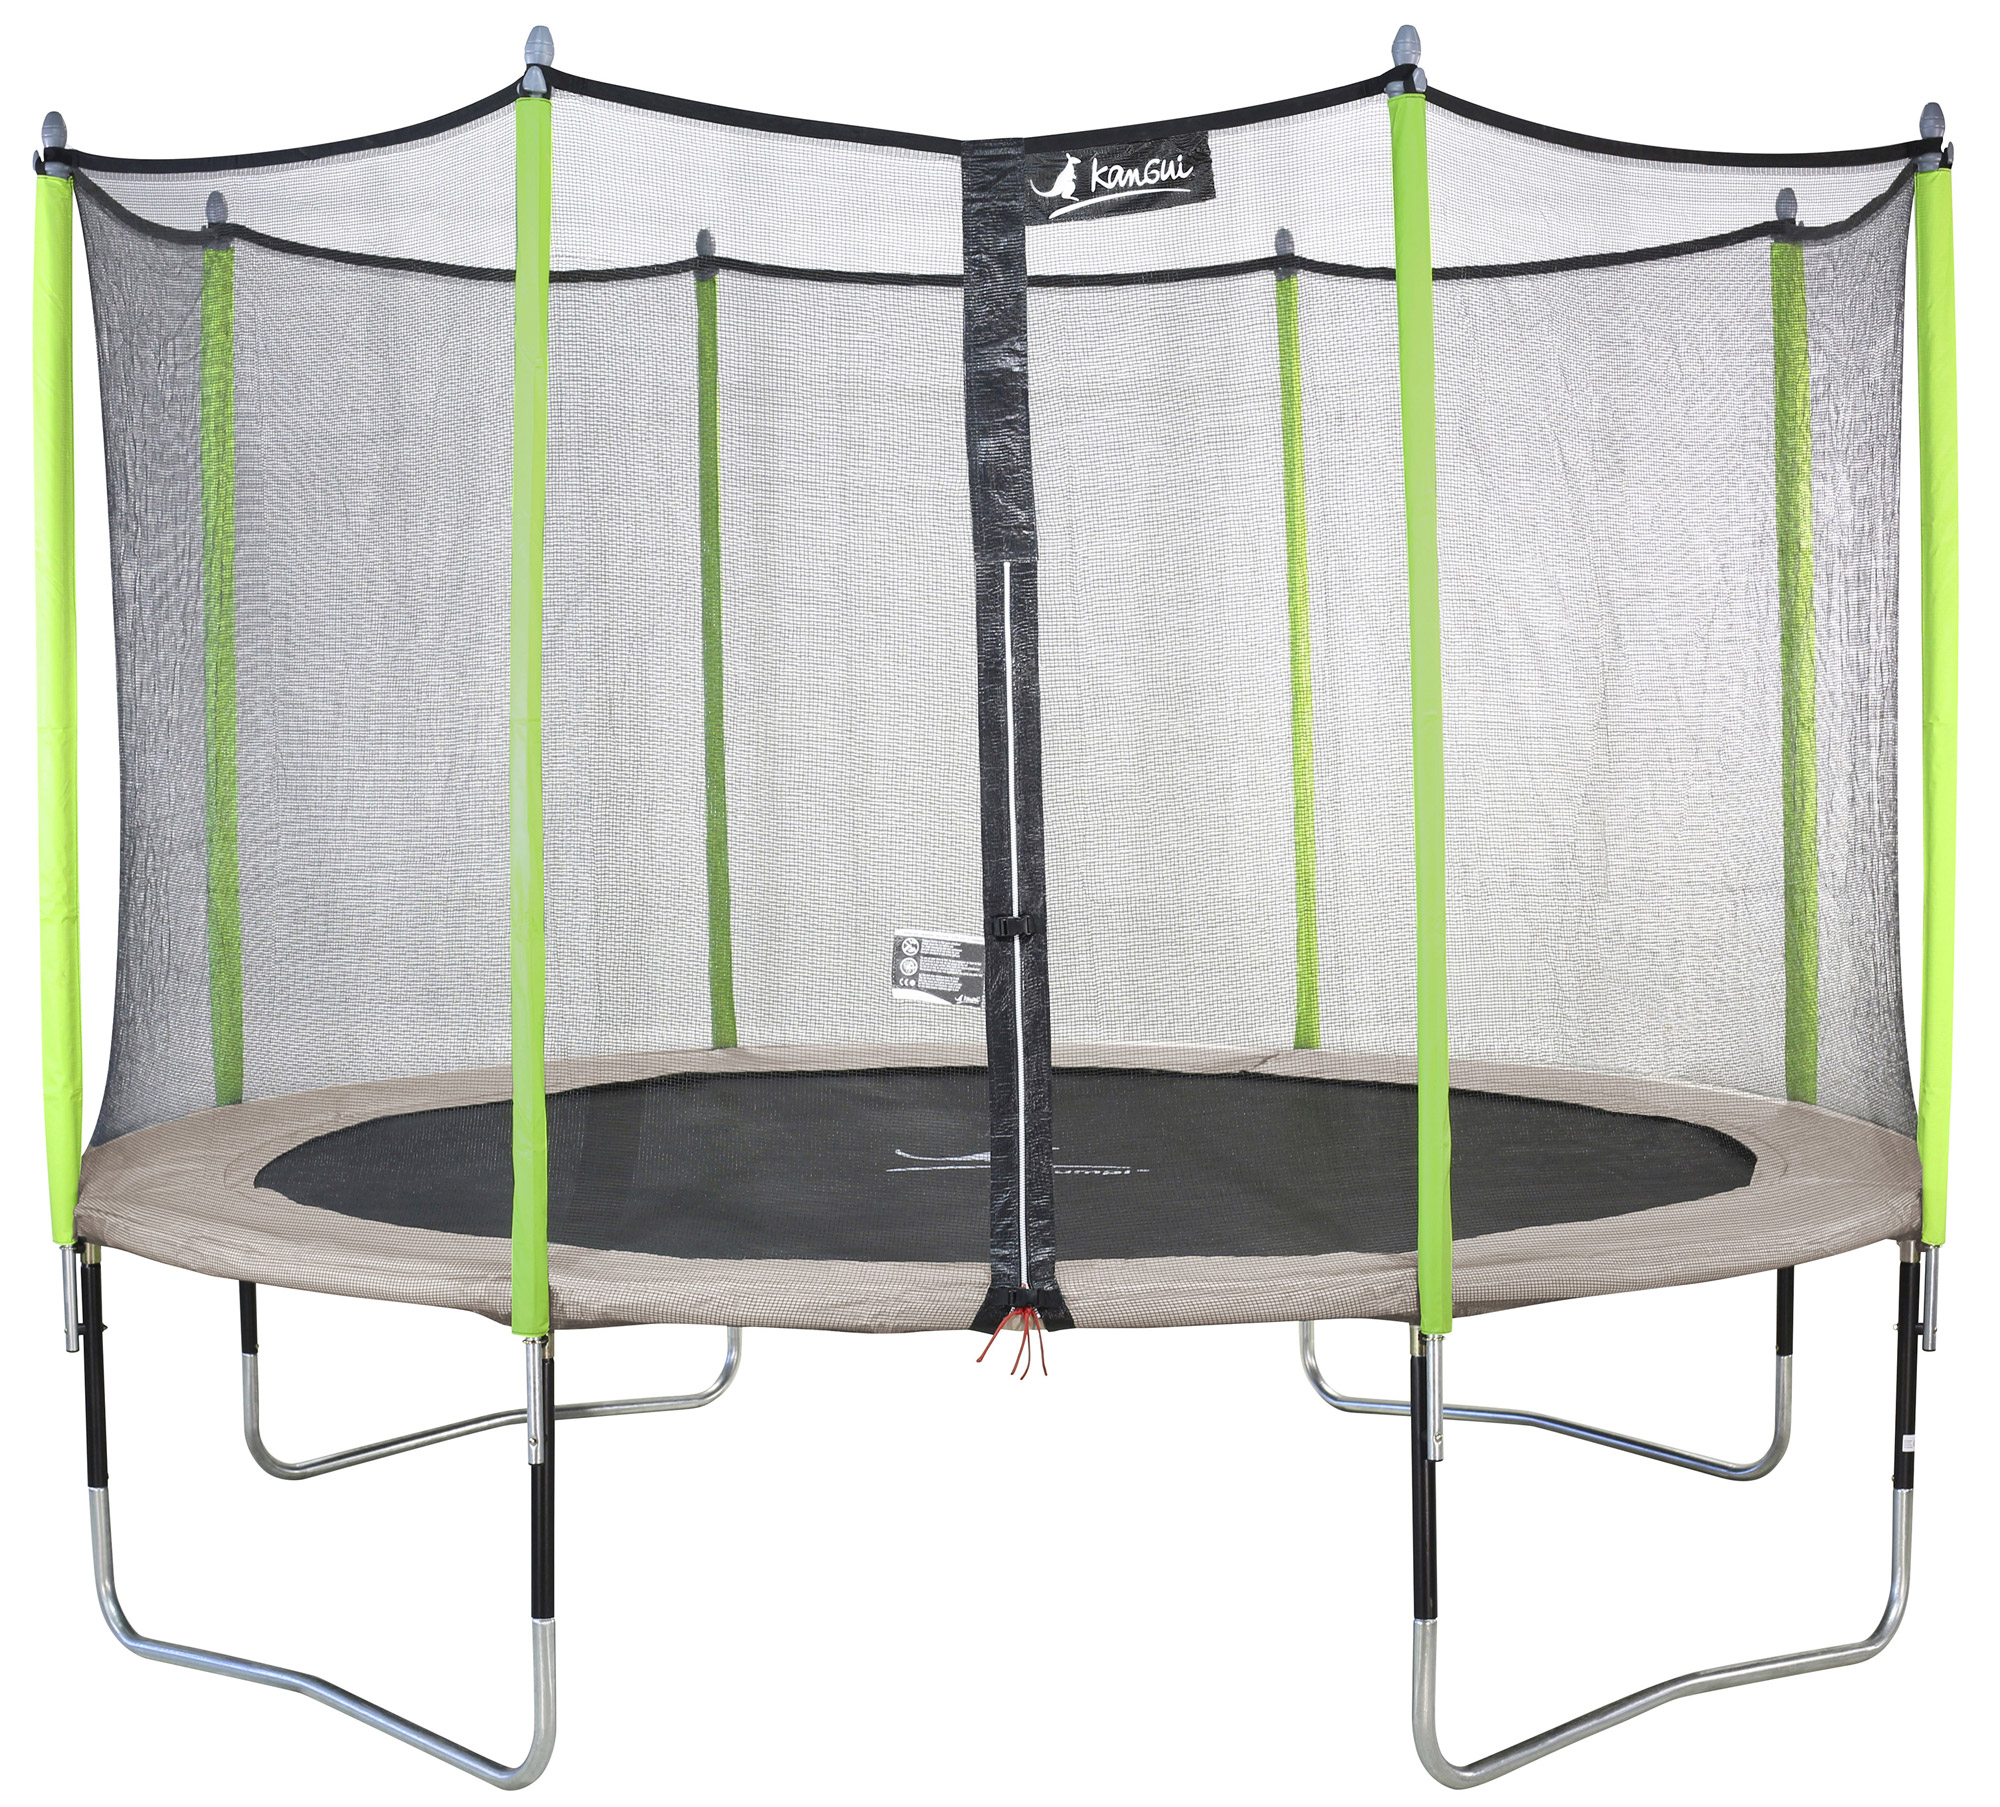 kangui trampoline de jardin 305 360 430 cm filet. Black Bedroom Furniture Sets. Home Design Ideas